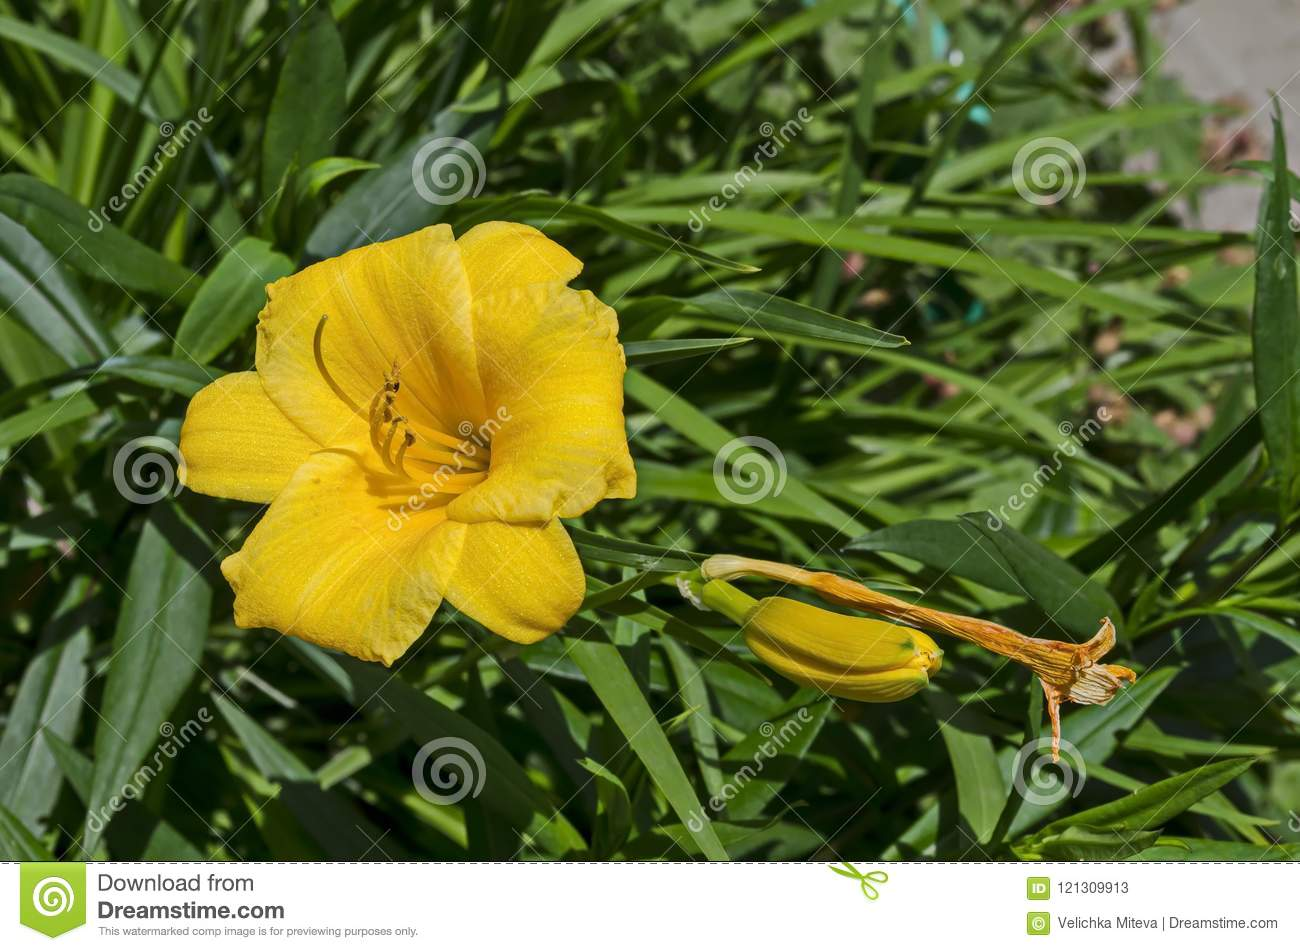 Flowering Yellow Day Lily Flower Or Hemerocallis Stella De Oro In